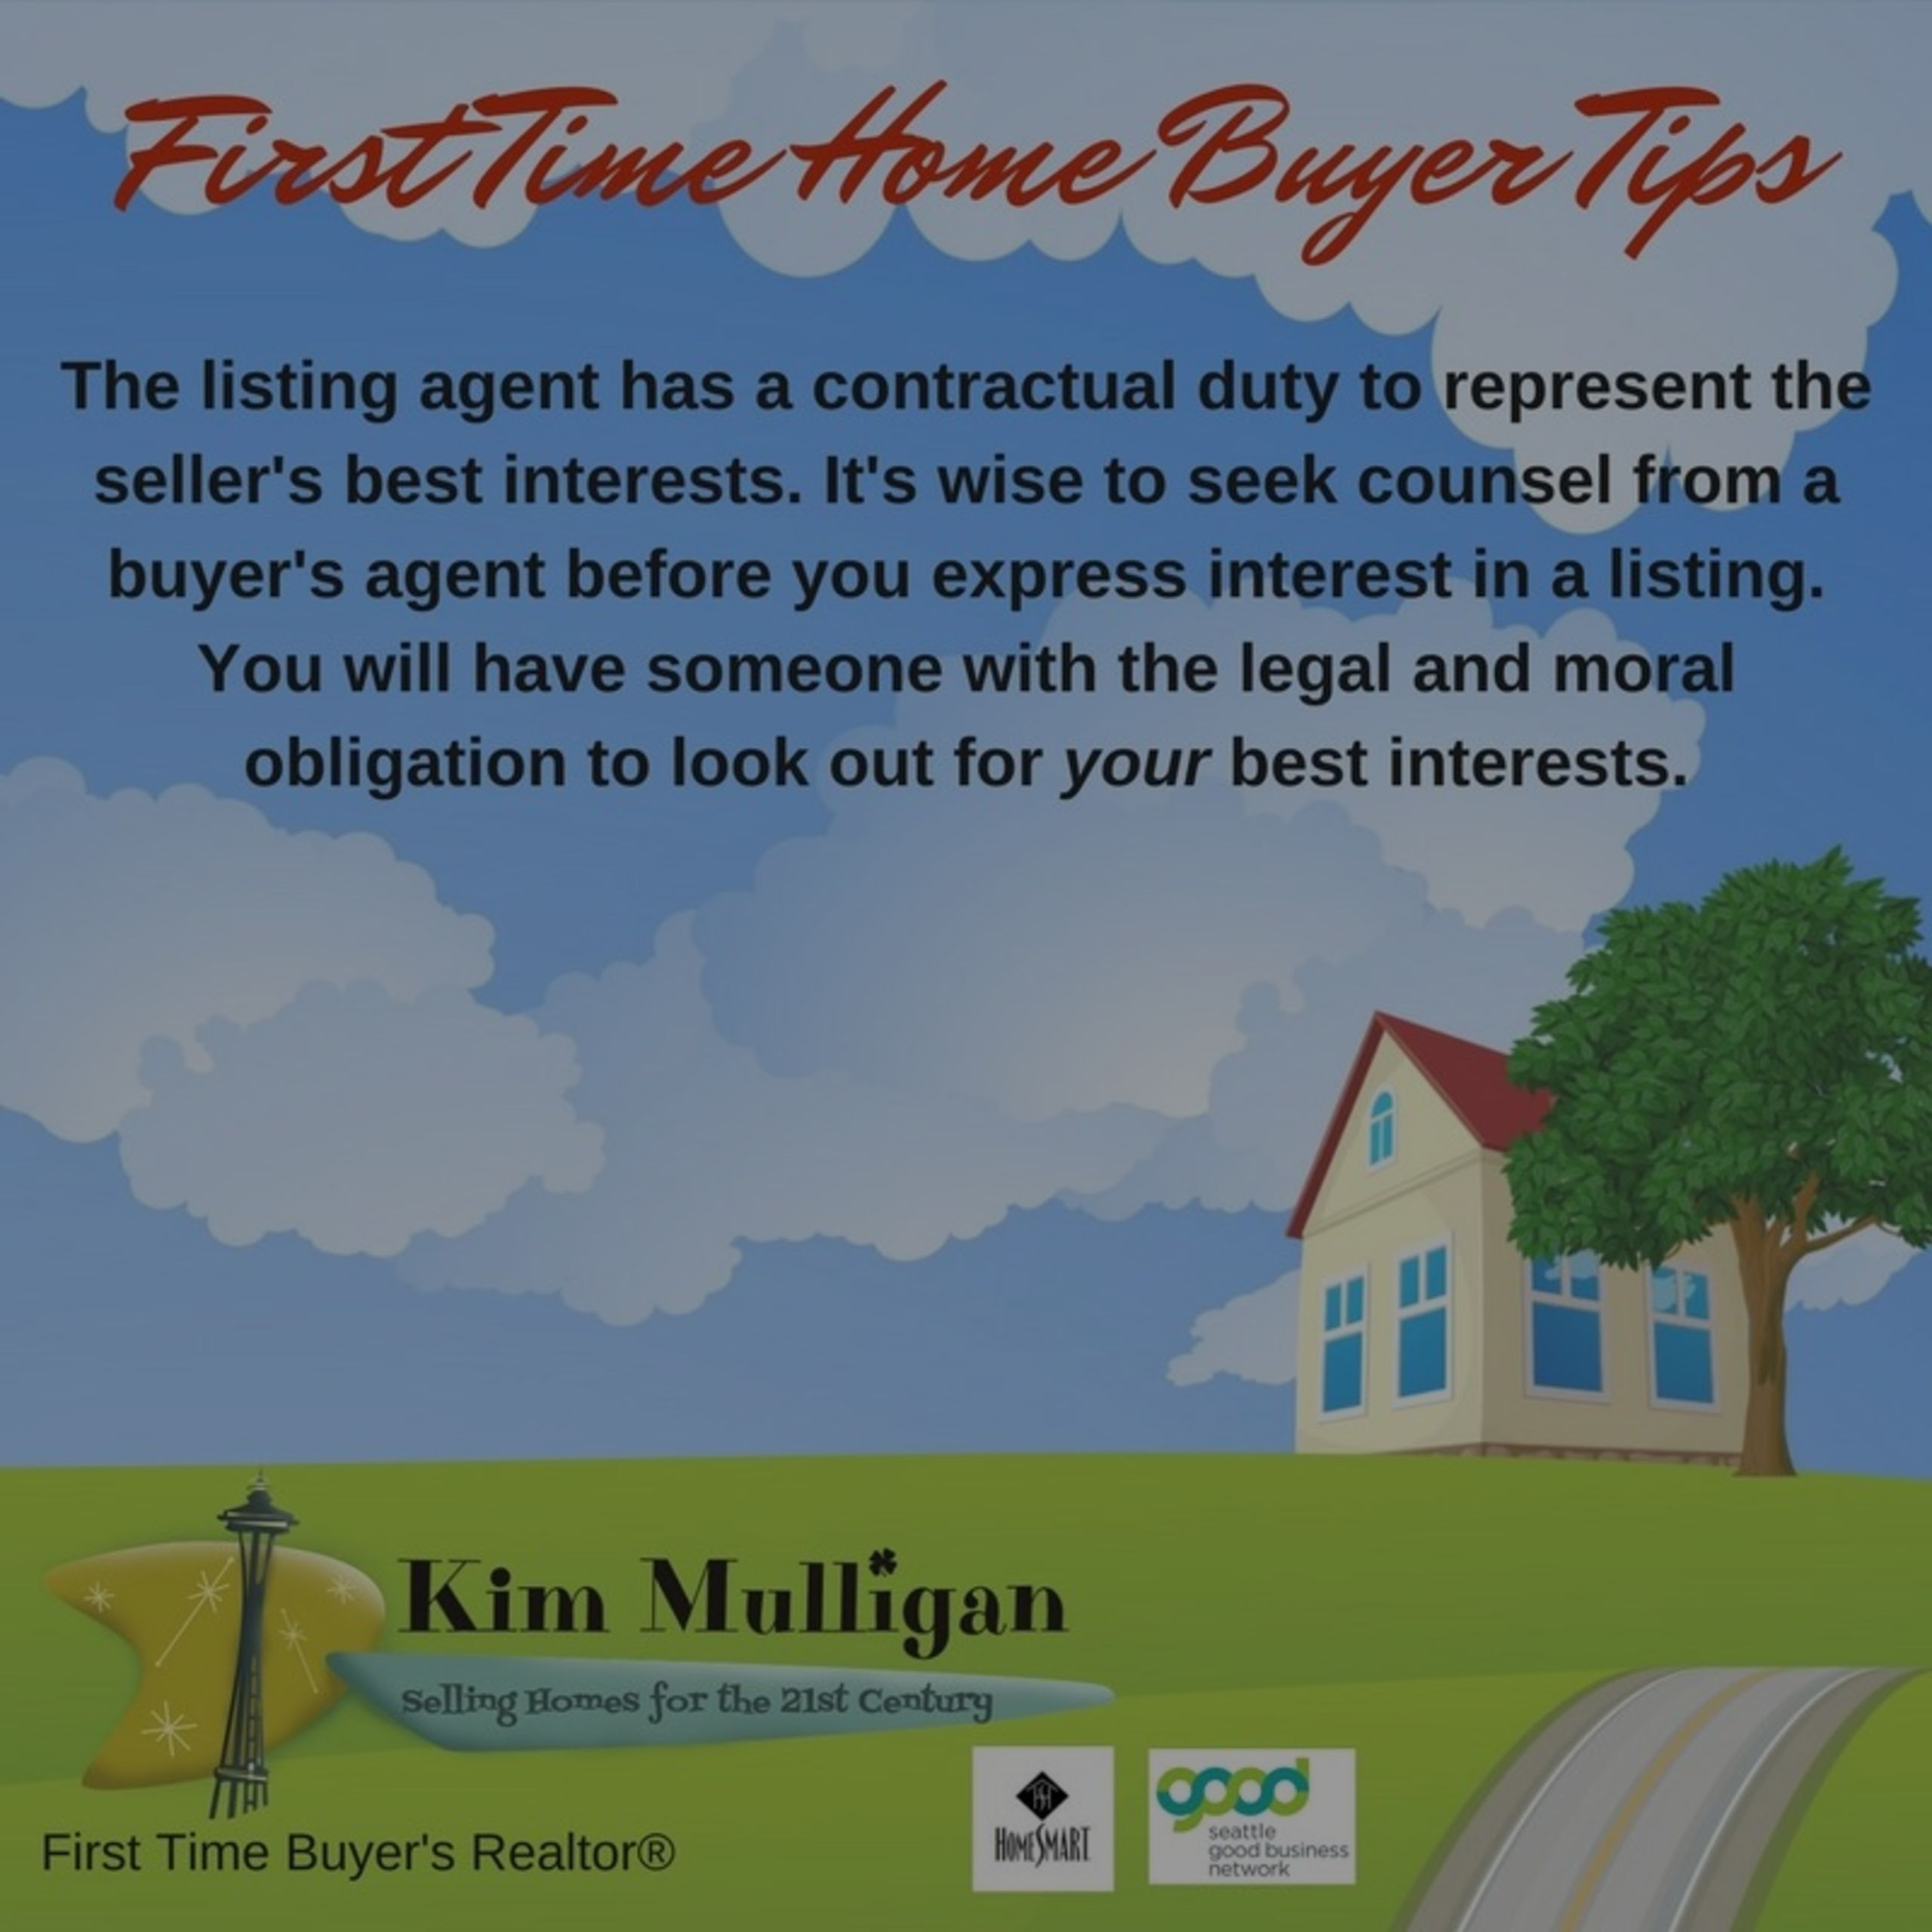 First Time Home Buyer Tips for the Greater Seattle Area #3